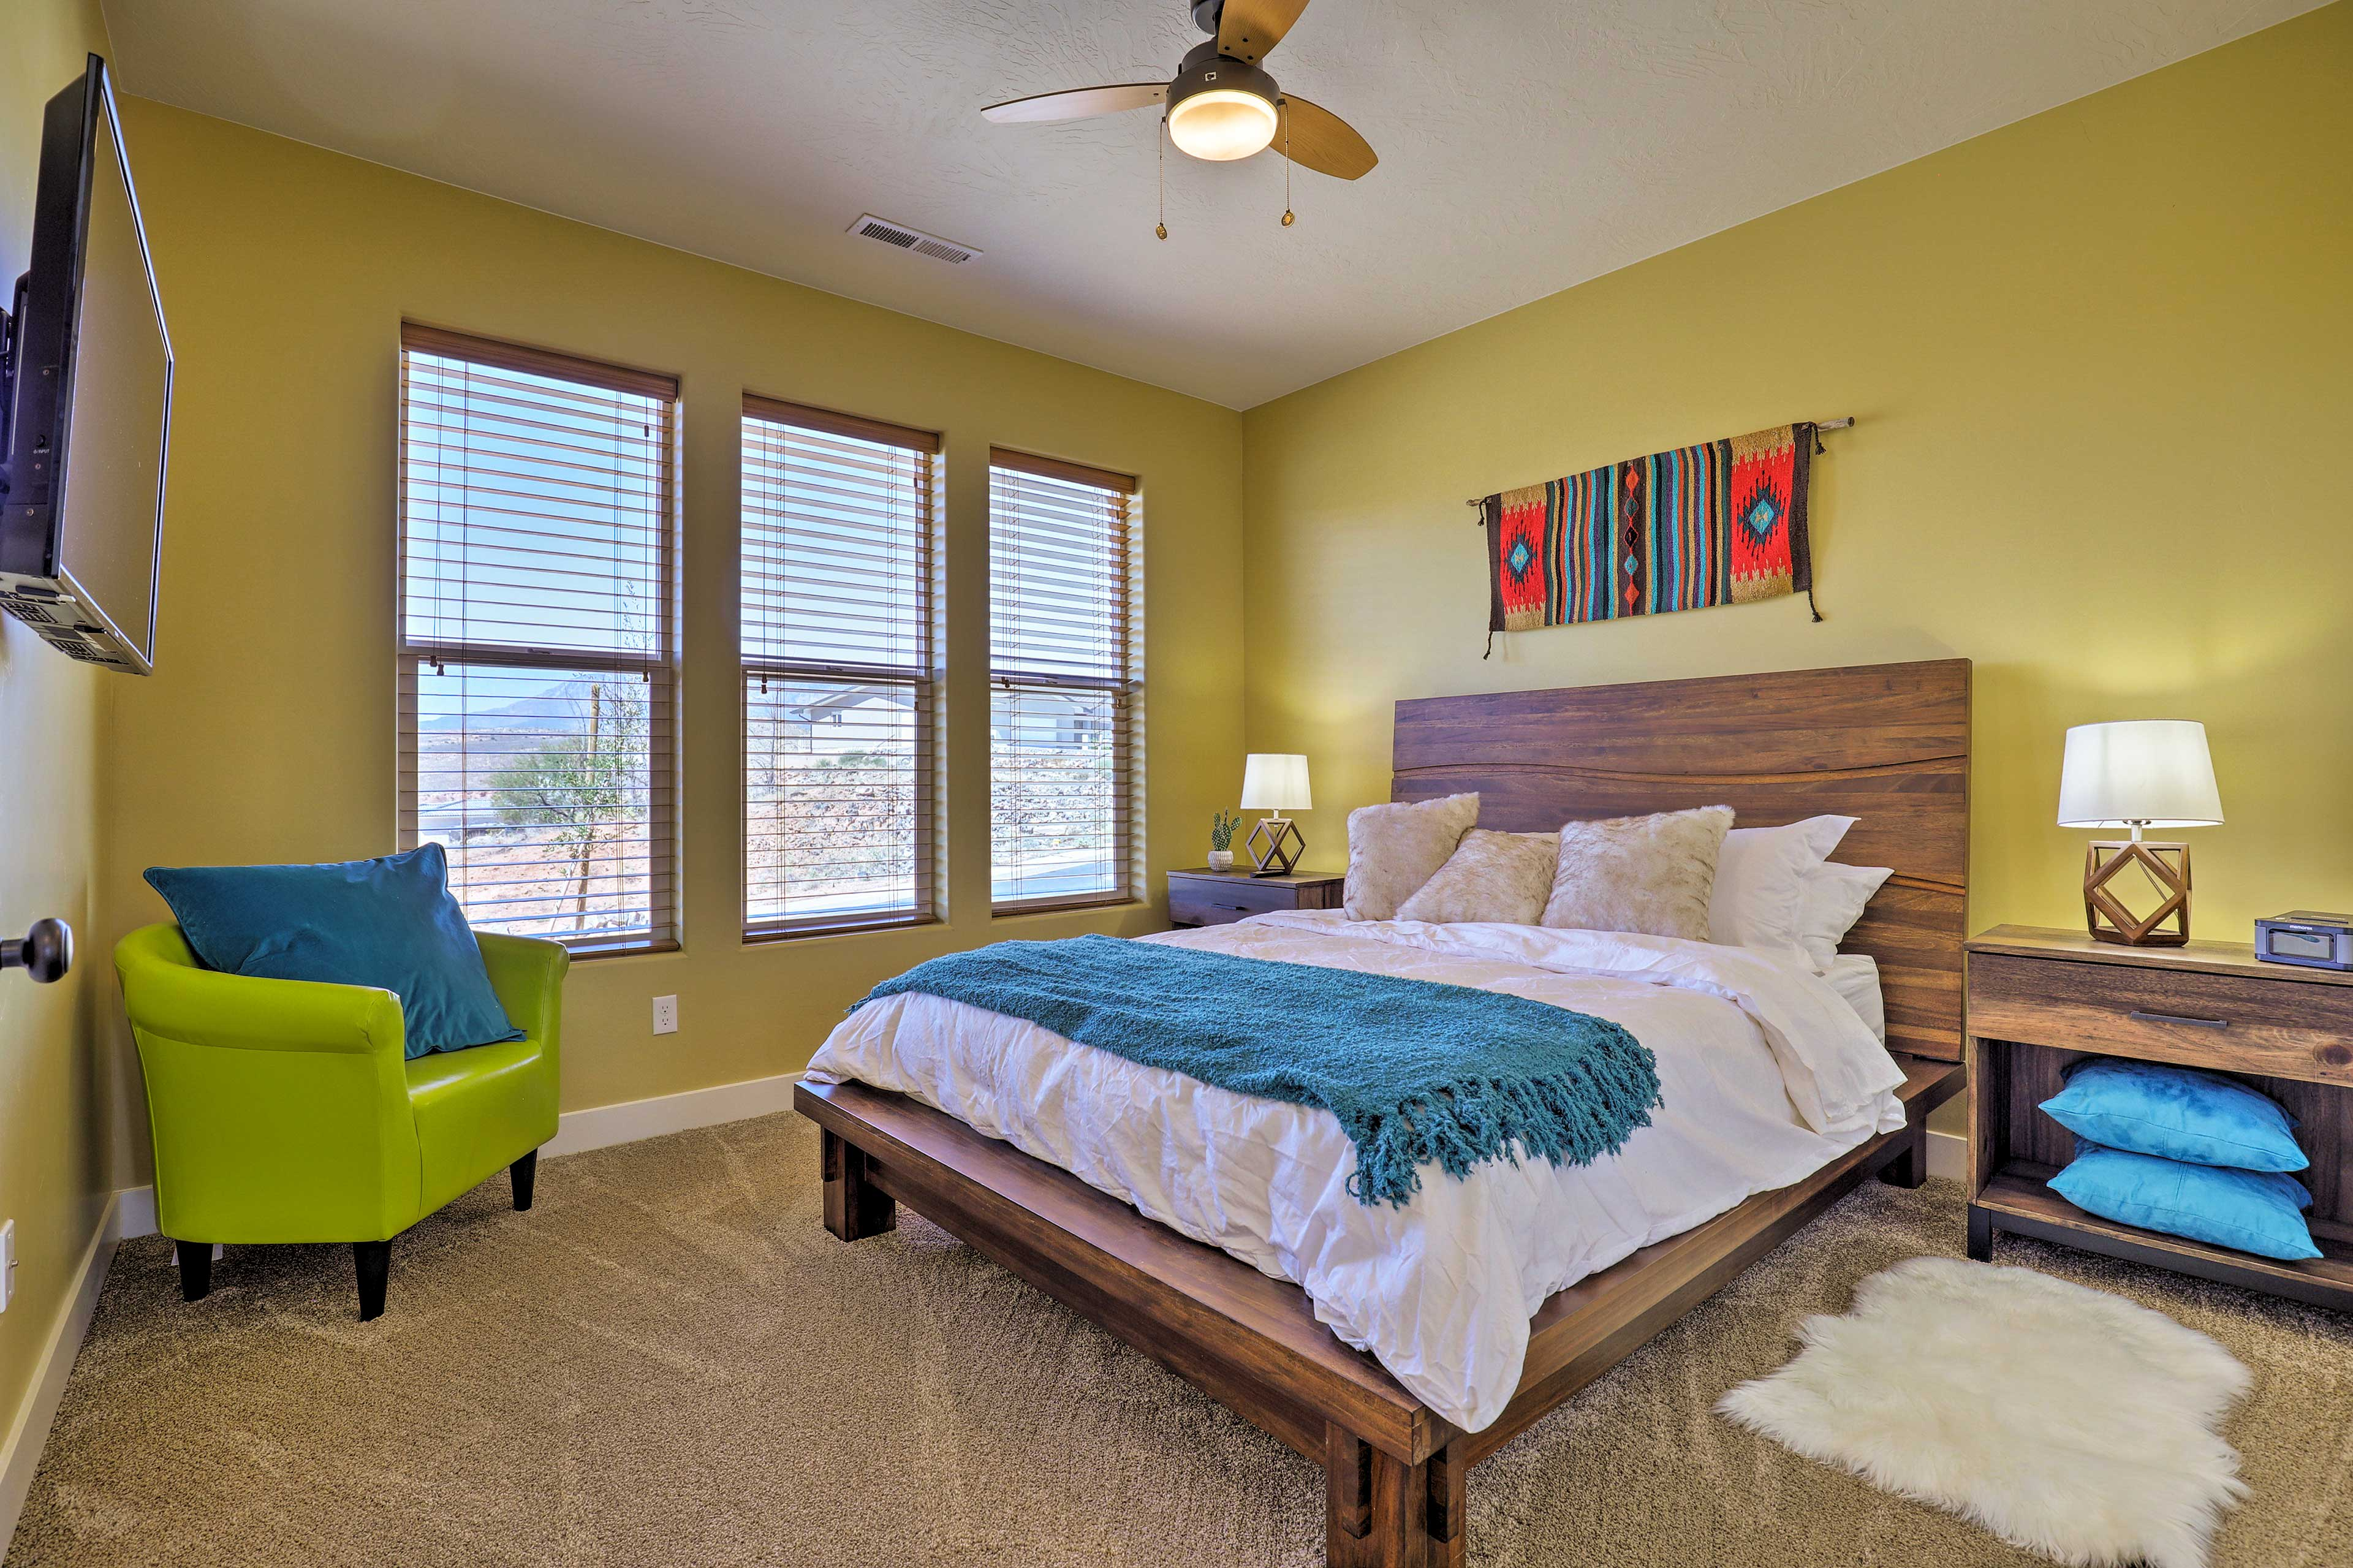 This colorful bedroom features a queen-sized bed.